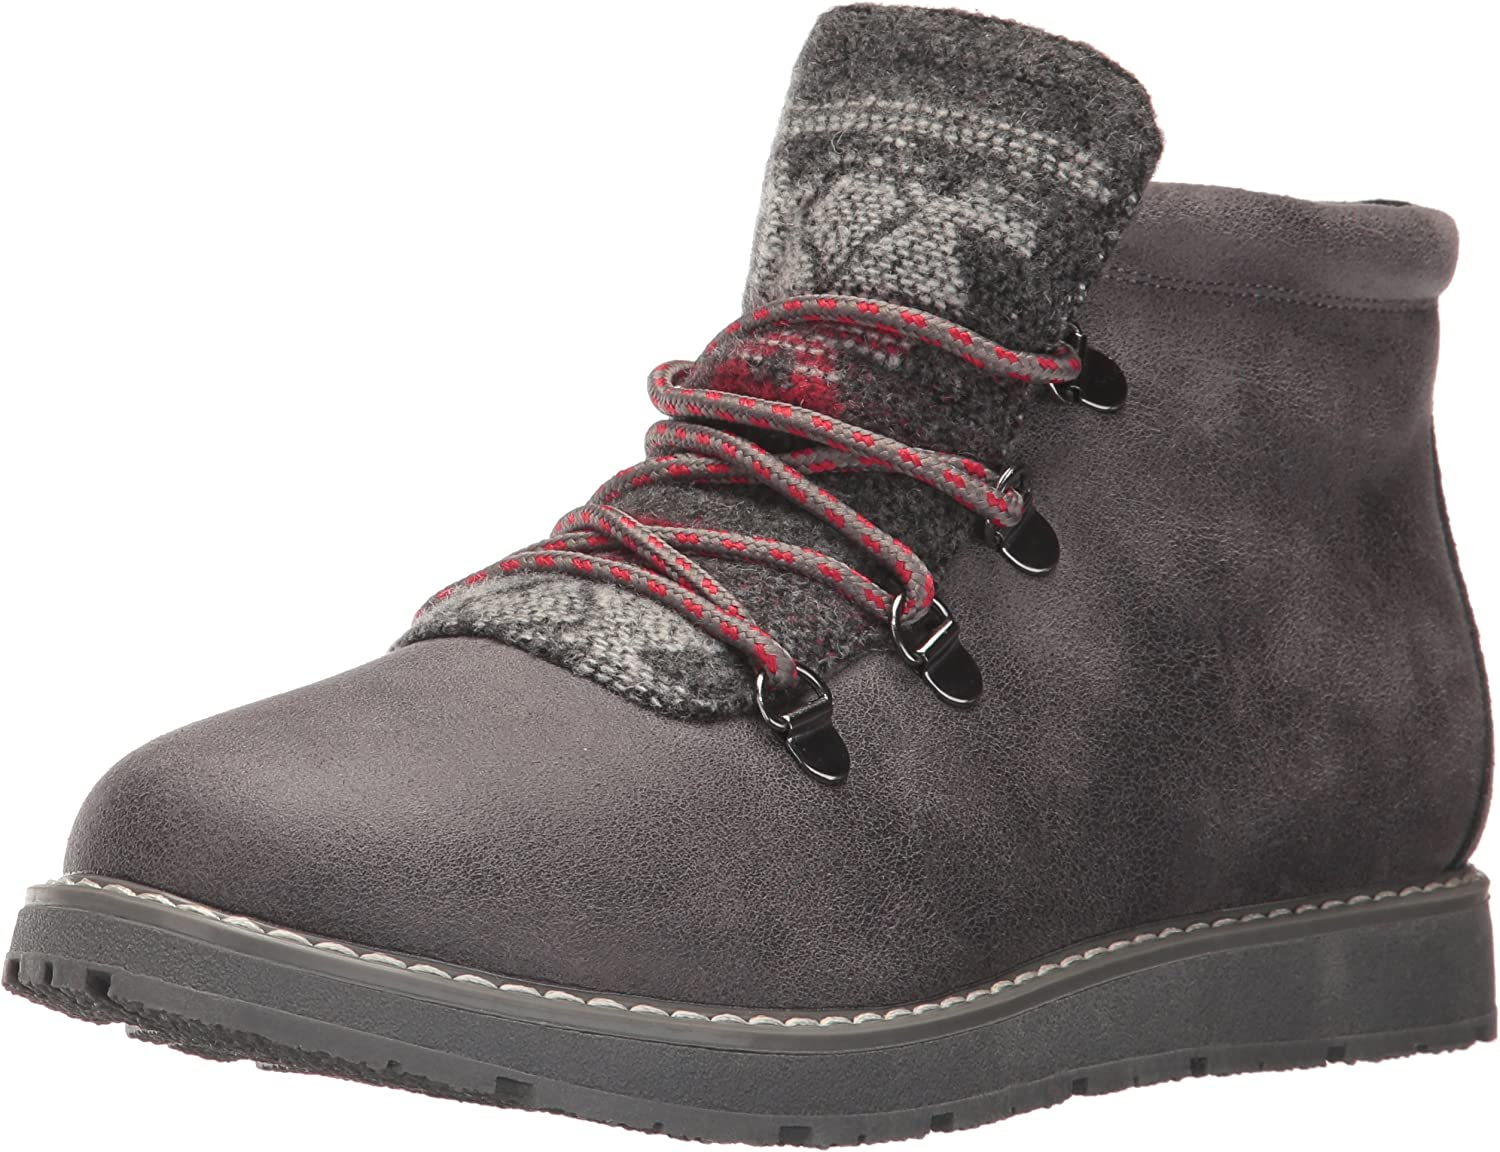 Prima frotis Teórico  Amazon.com | Skechers BOBS Women's Bobs Alpine-Keep Trekking. Aztec Tongue  Hiking Boot w Memory Foam, Charcoal, 6 M US | Hiking Boots